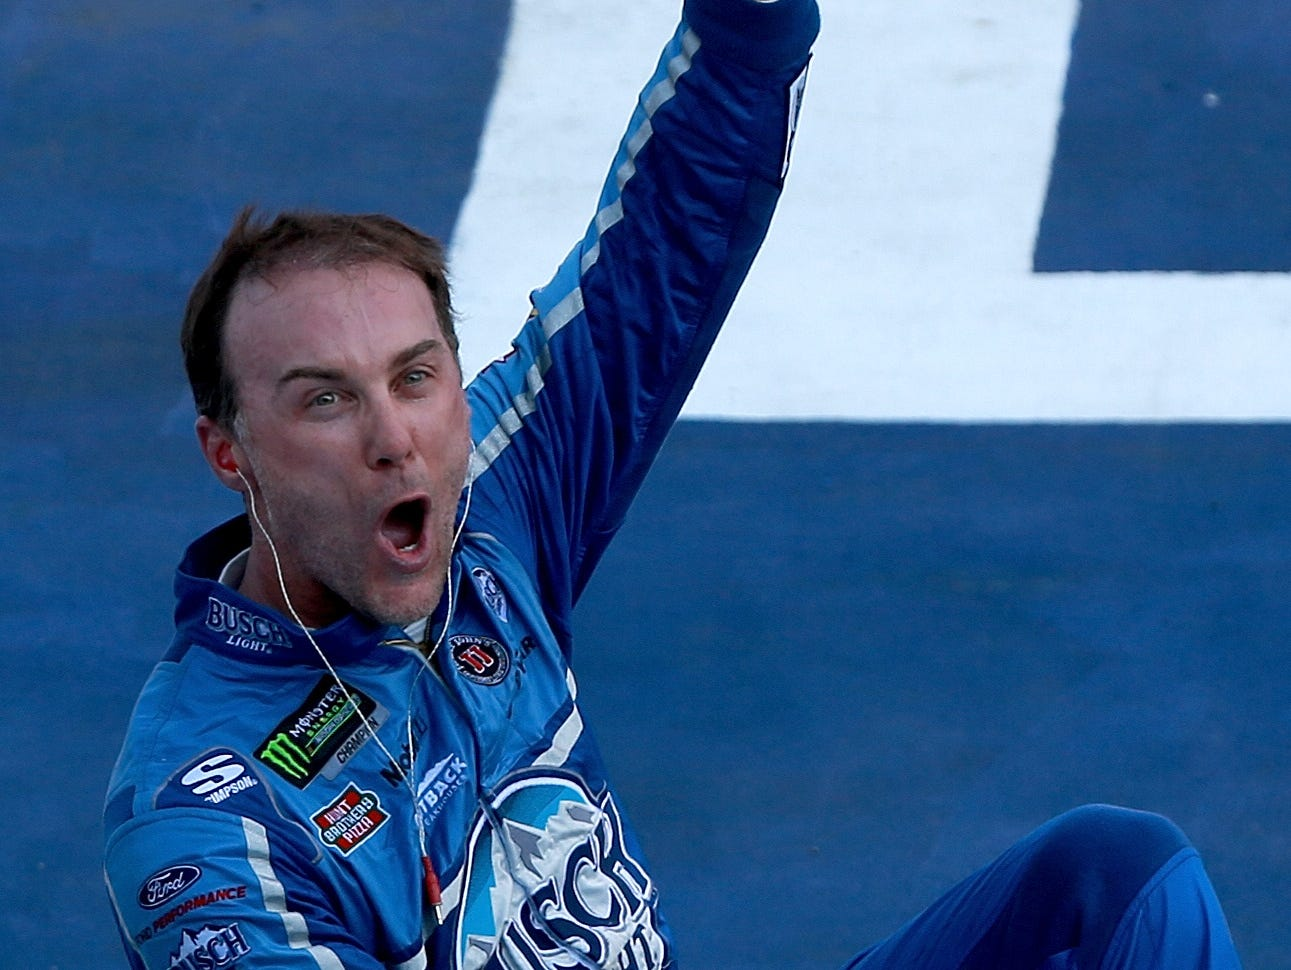 Kevin Harvick, driver of the #4 Busch Light/Mobil 1 Ford, celebrates after winning the Monster Energy NASCAR Cup Series Consmers Energy 400 at Michigan International Speedway.